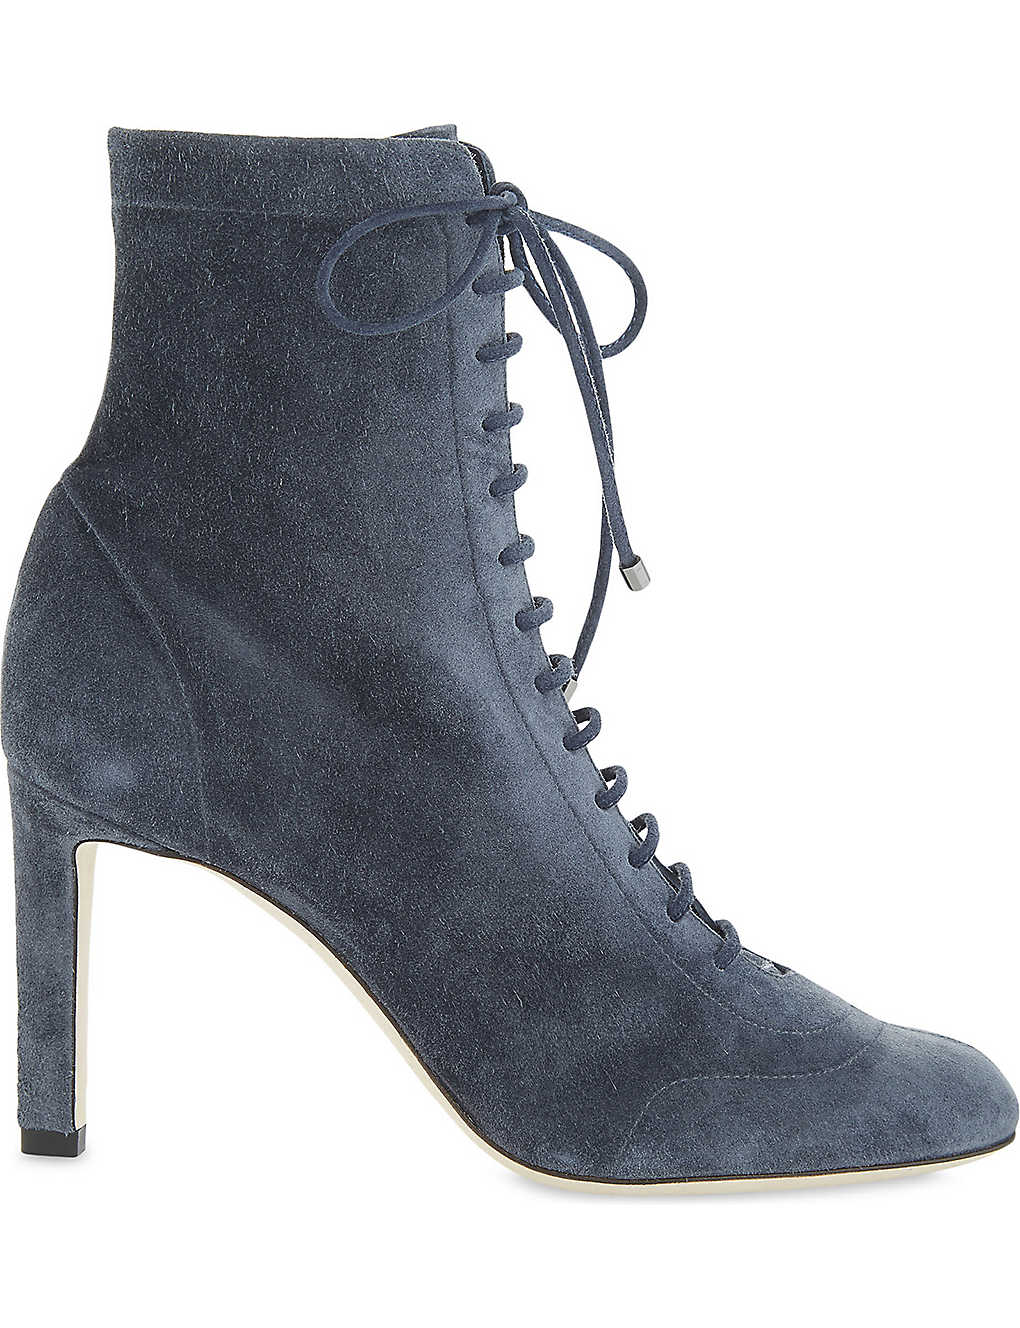 9e354584489 JIMMY CHOO - Daize 85 cashmere suede ankle boots